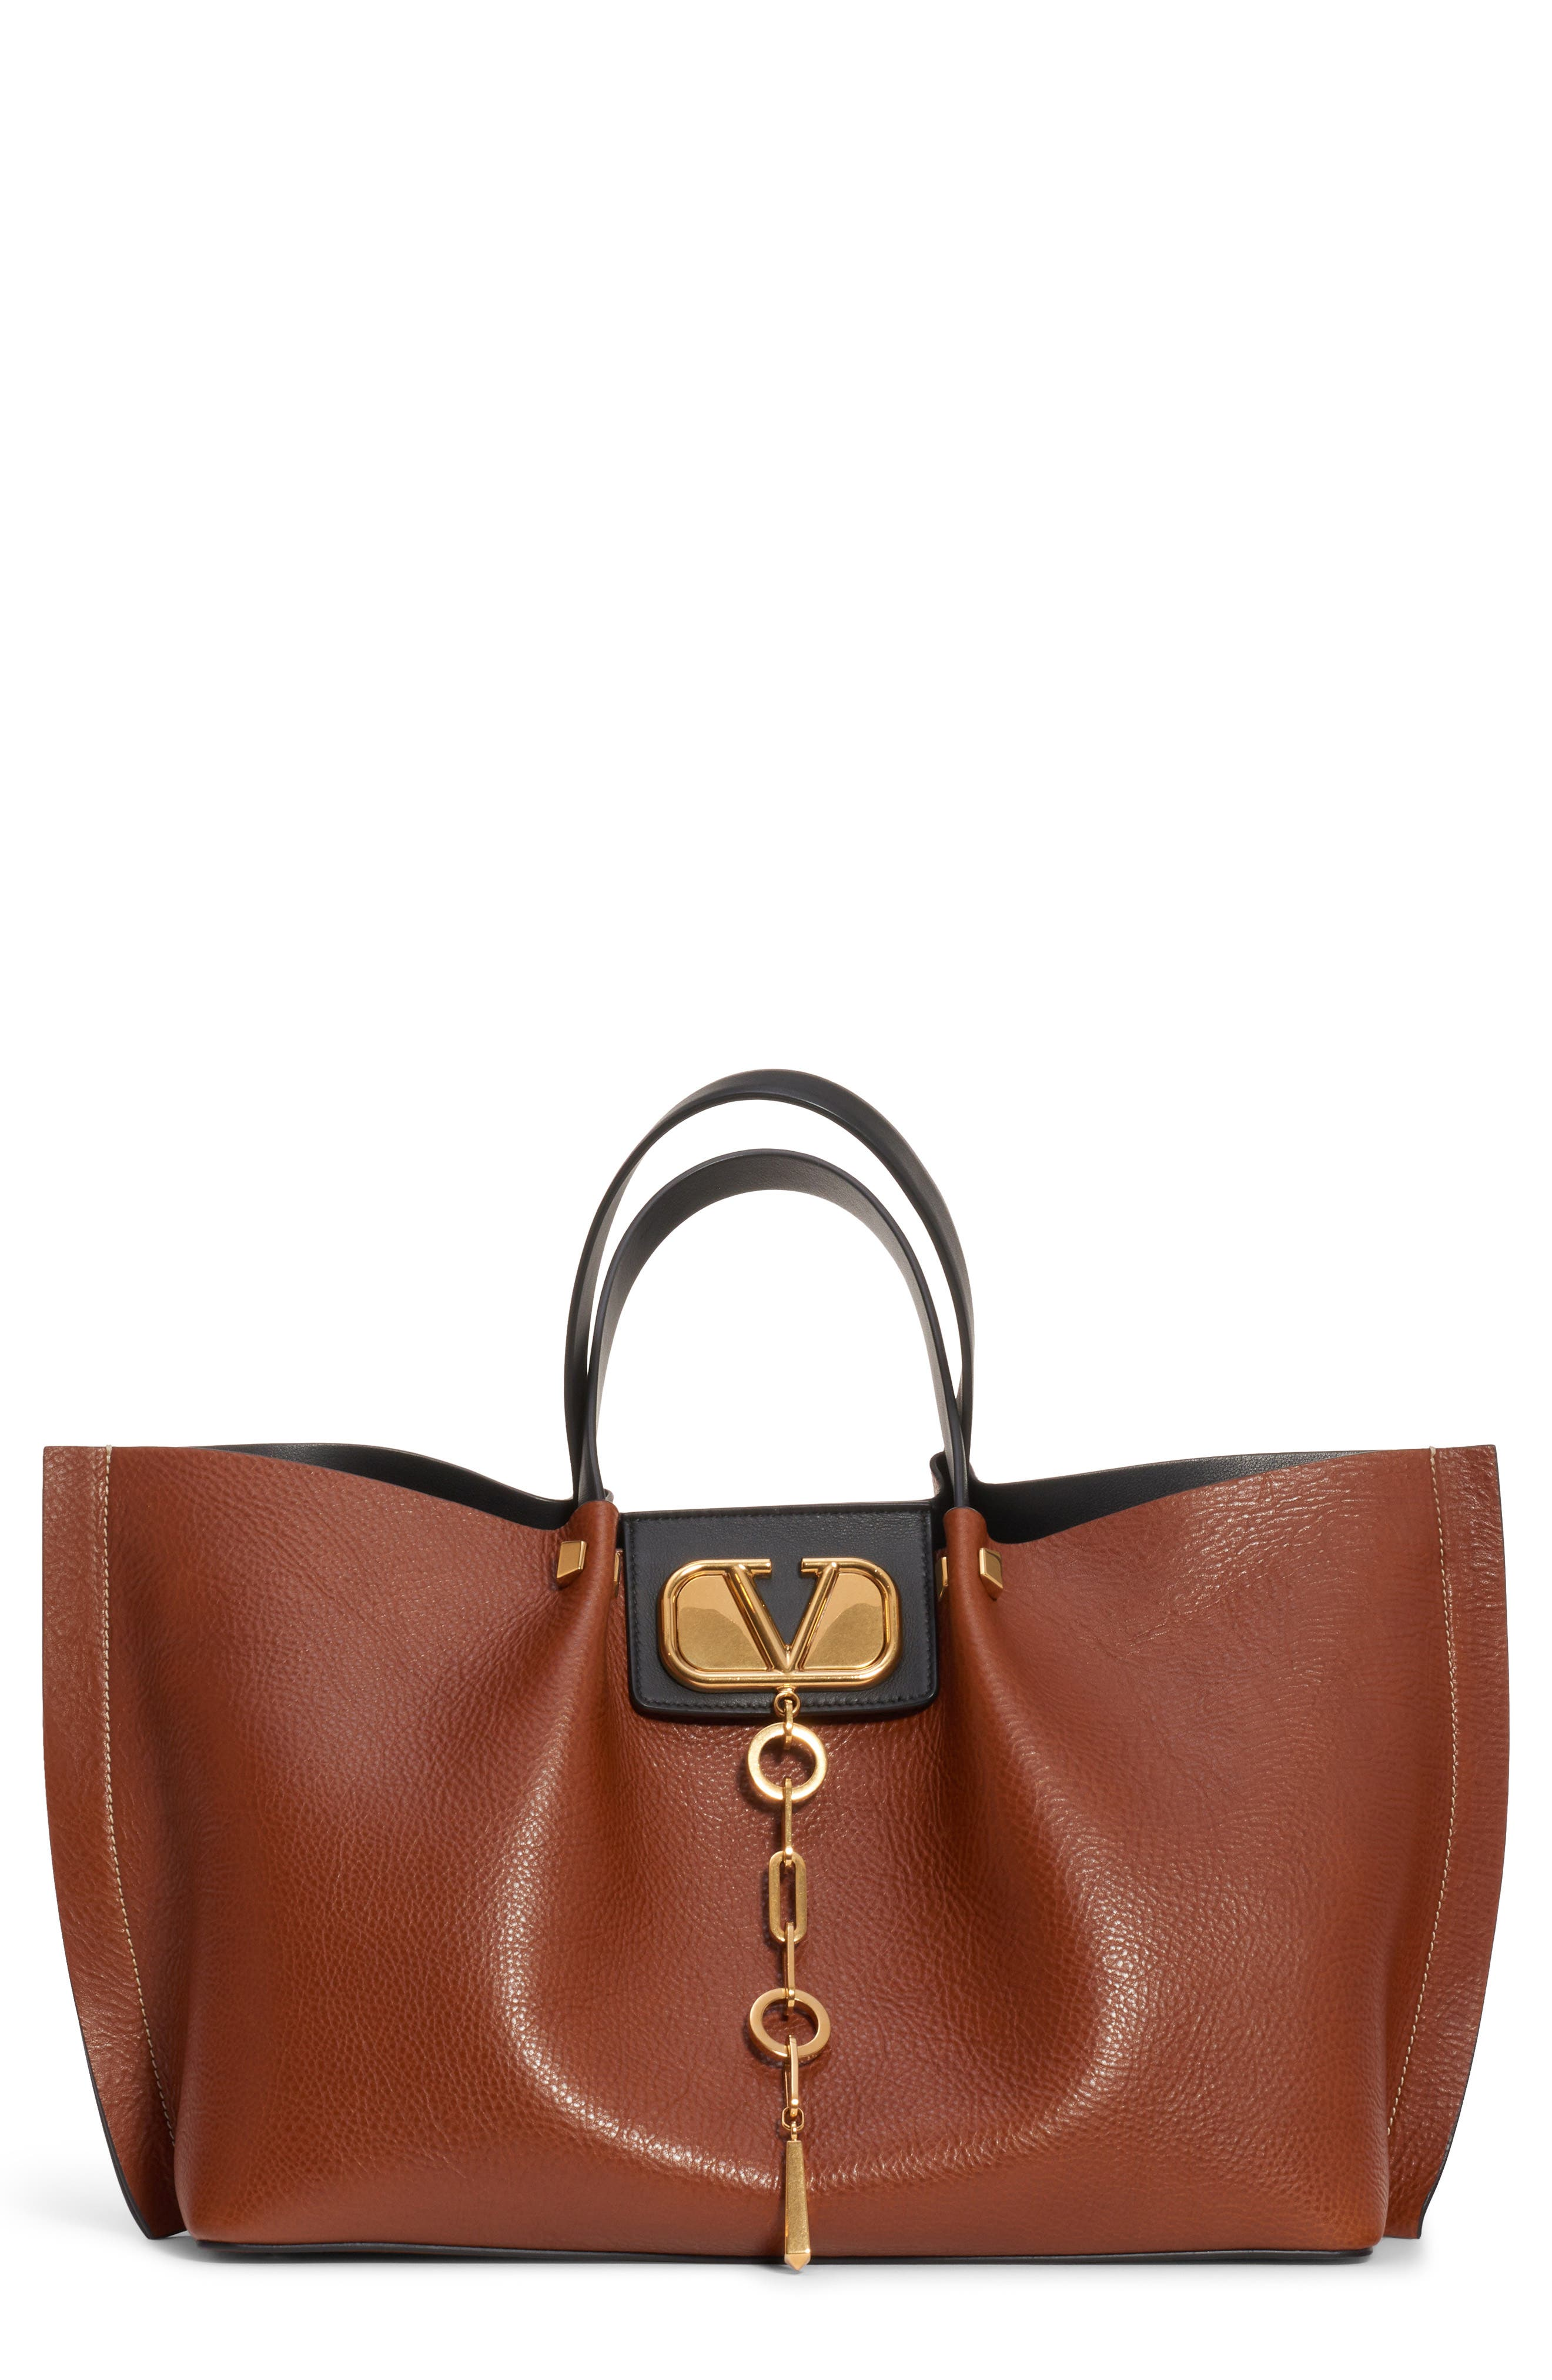 VALENTINO GARAVANI,                             Medium Go Logo Leather Tote,                             Main thumbnail 1, color,                             TAN/ NERO/ ROUGE PUR